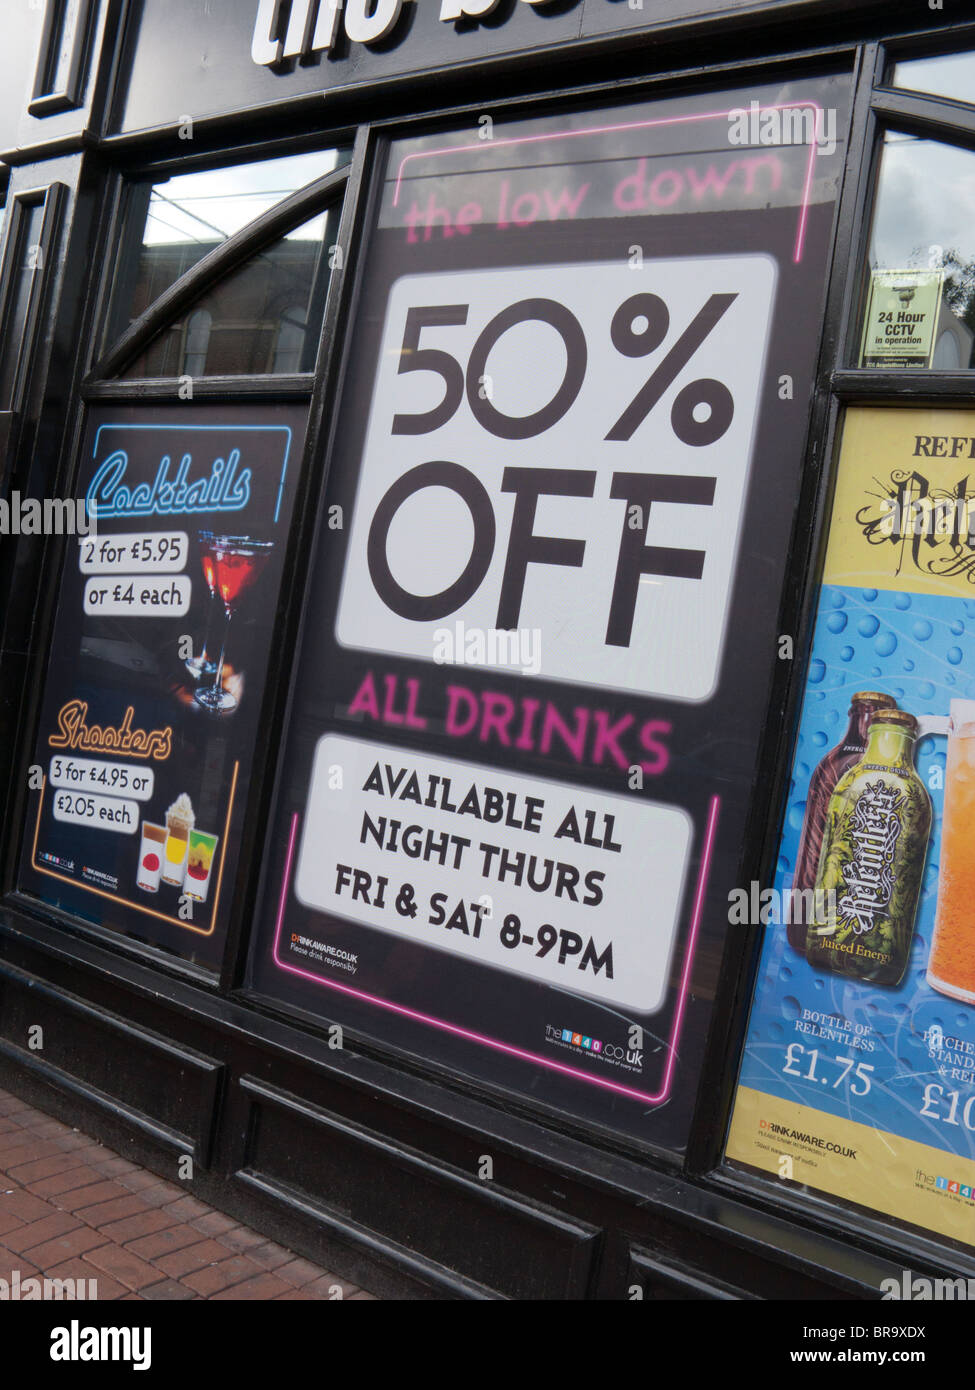 Cheap Alcoholic Drinks - Stock Image